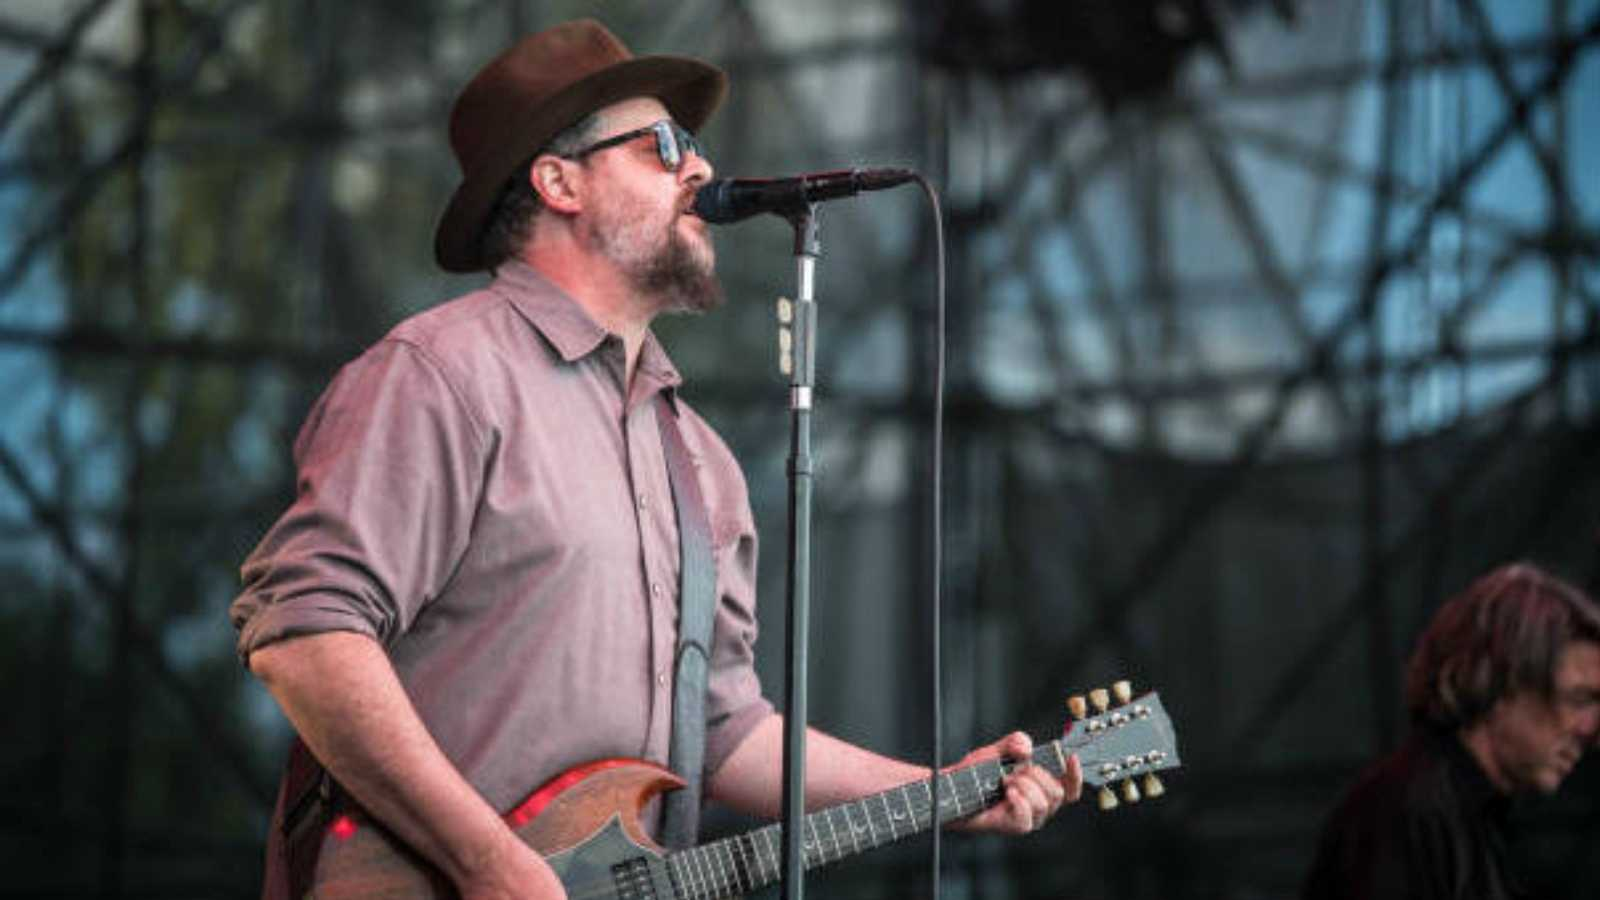 Saltamontes - Drive-By Truckers - 27/11/20 - escuchar ahora